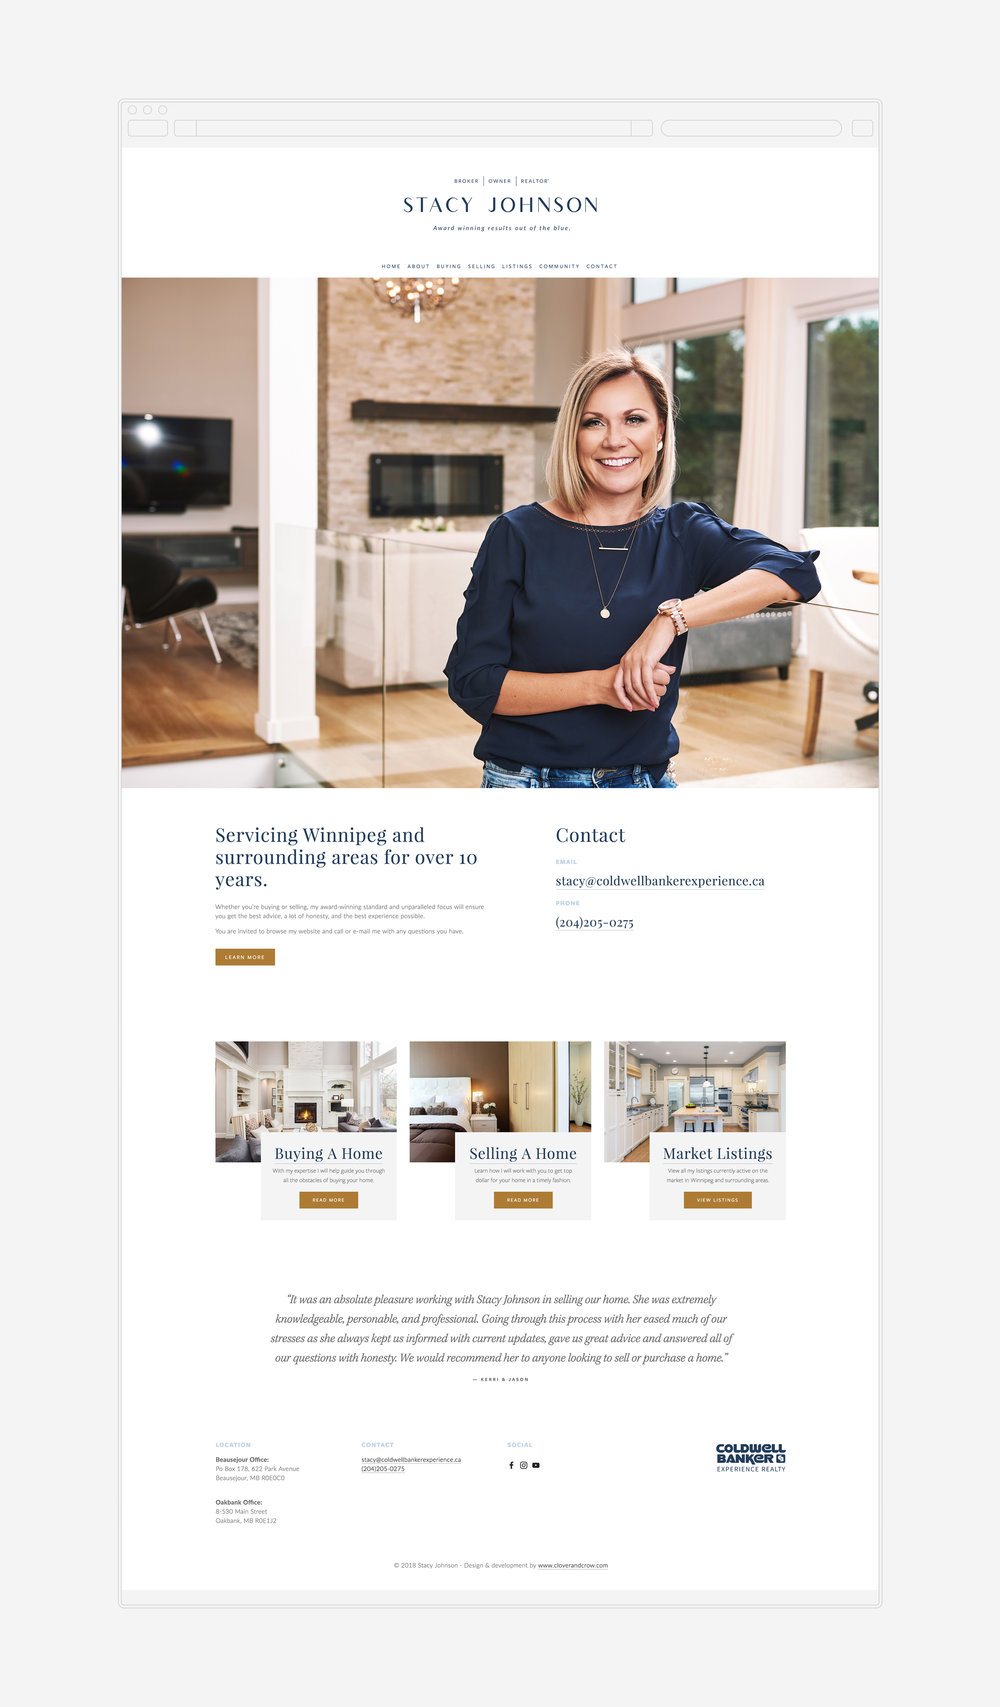 stacy-johnson-website-design-clover-and-crow